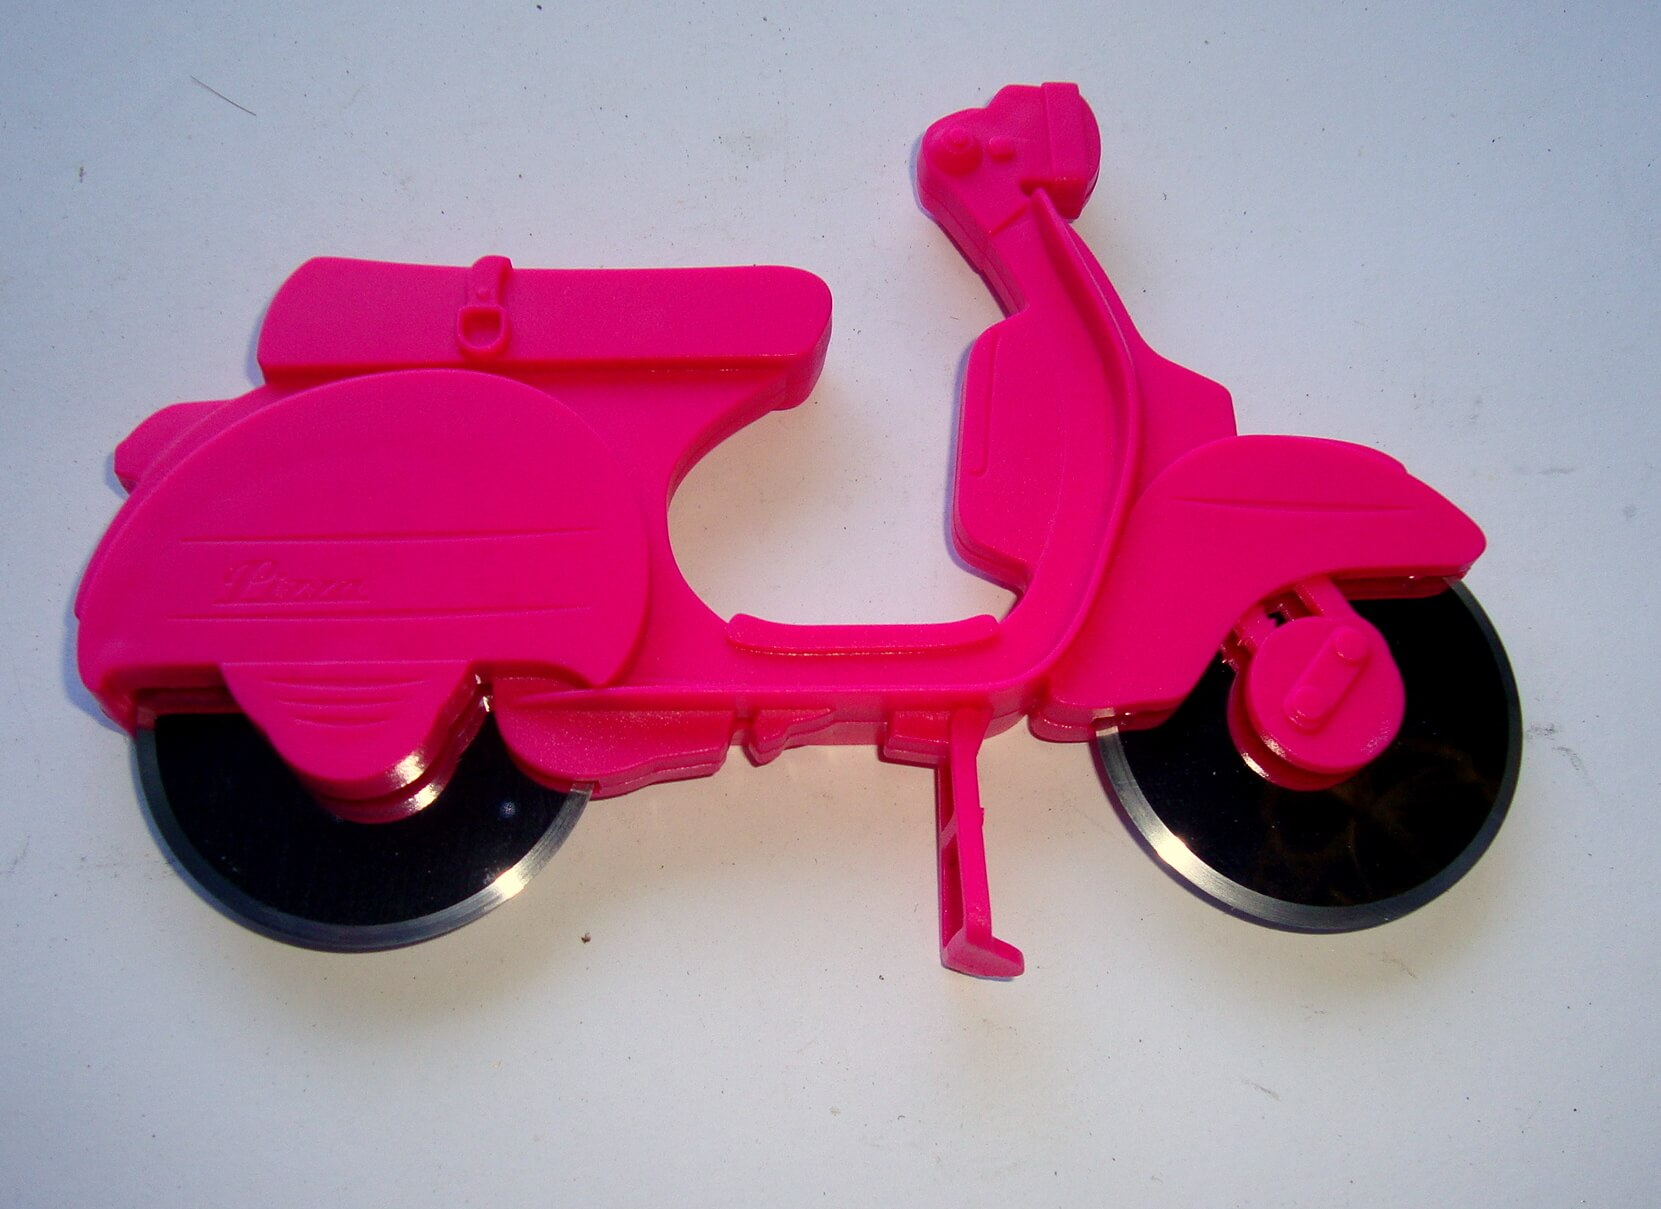 Pizza cutter scooter, pink